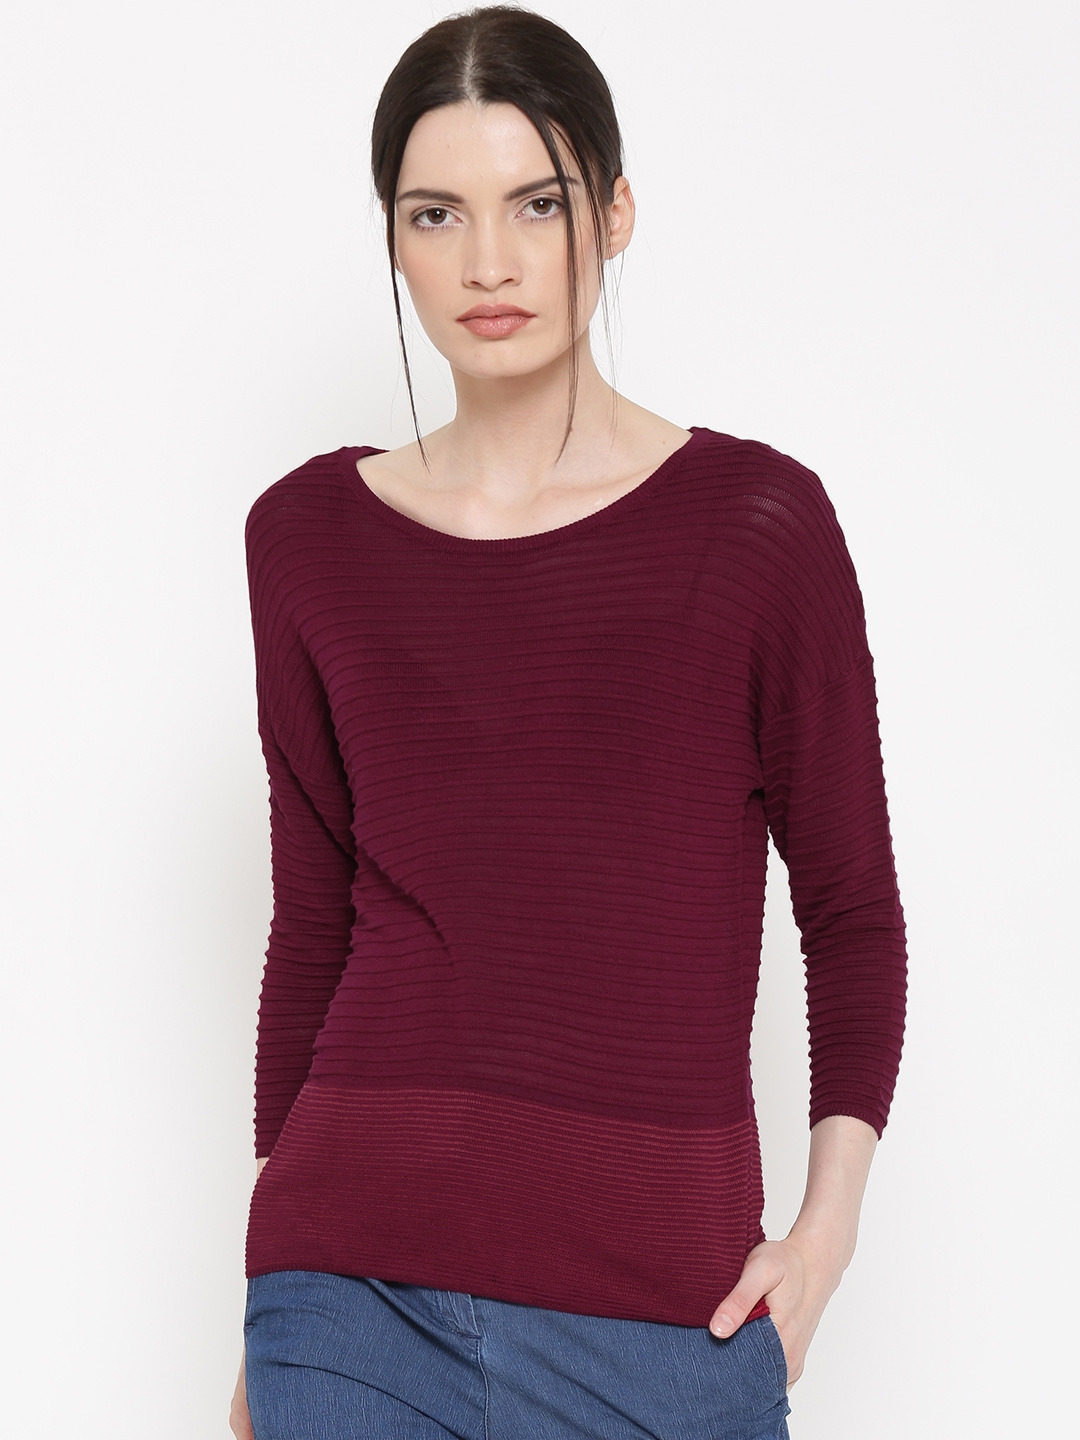 54b958467a Buy United Colors Of Benetton Women Wine Coloured Self Striped ...